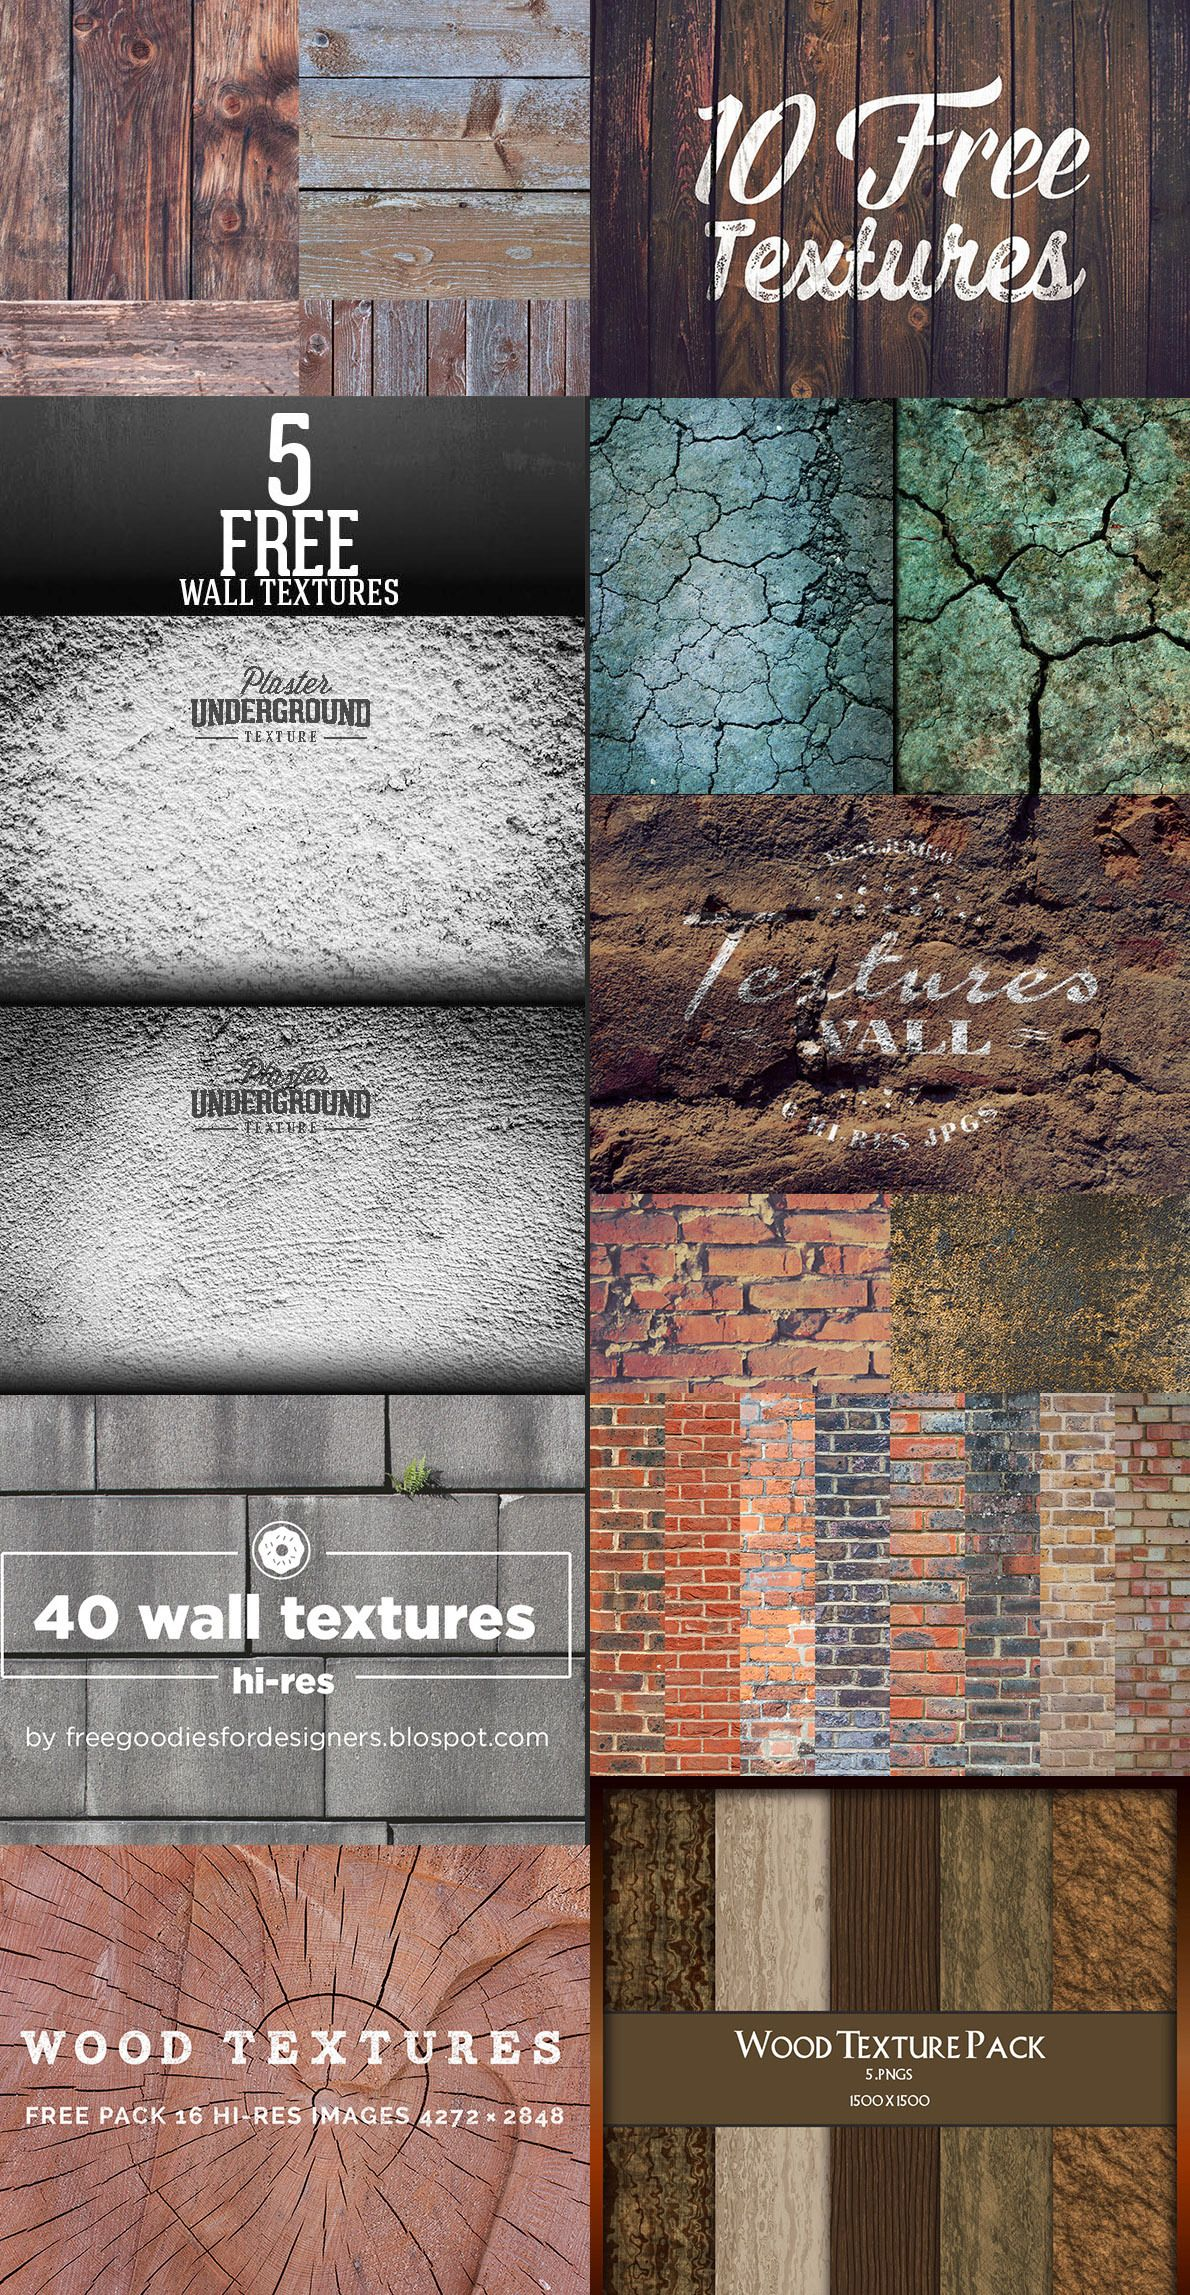 Holzwand Textur 27 43 Free Wood Textures Packs Phs Pinterest Grafik